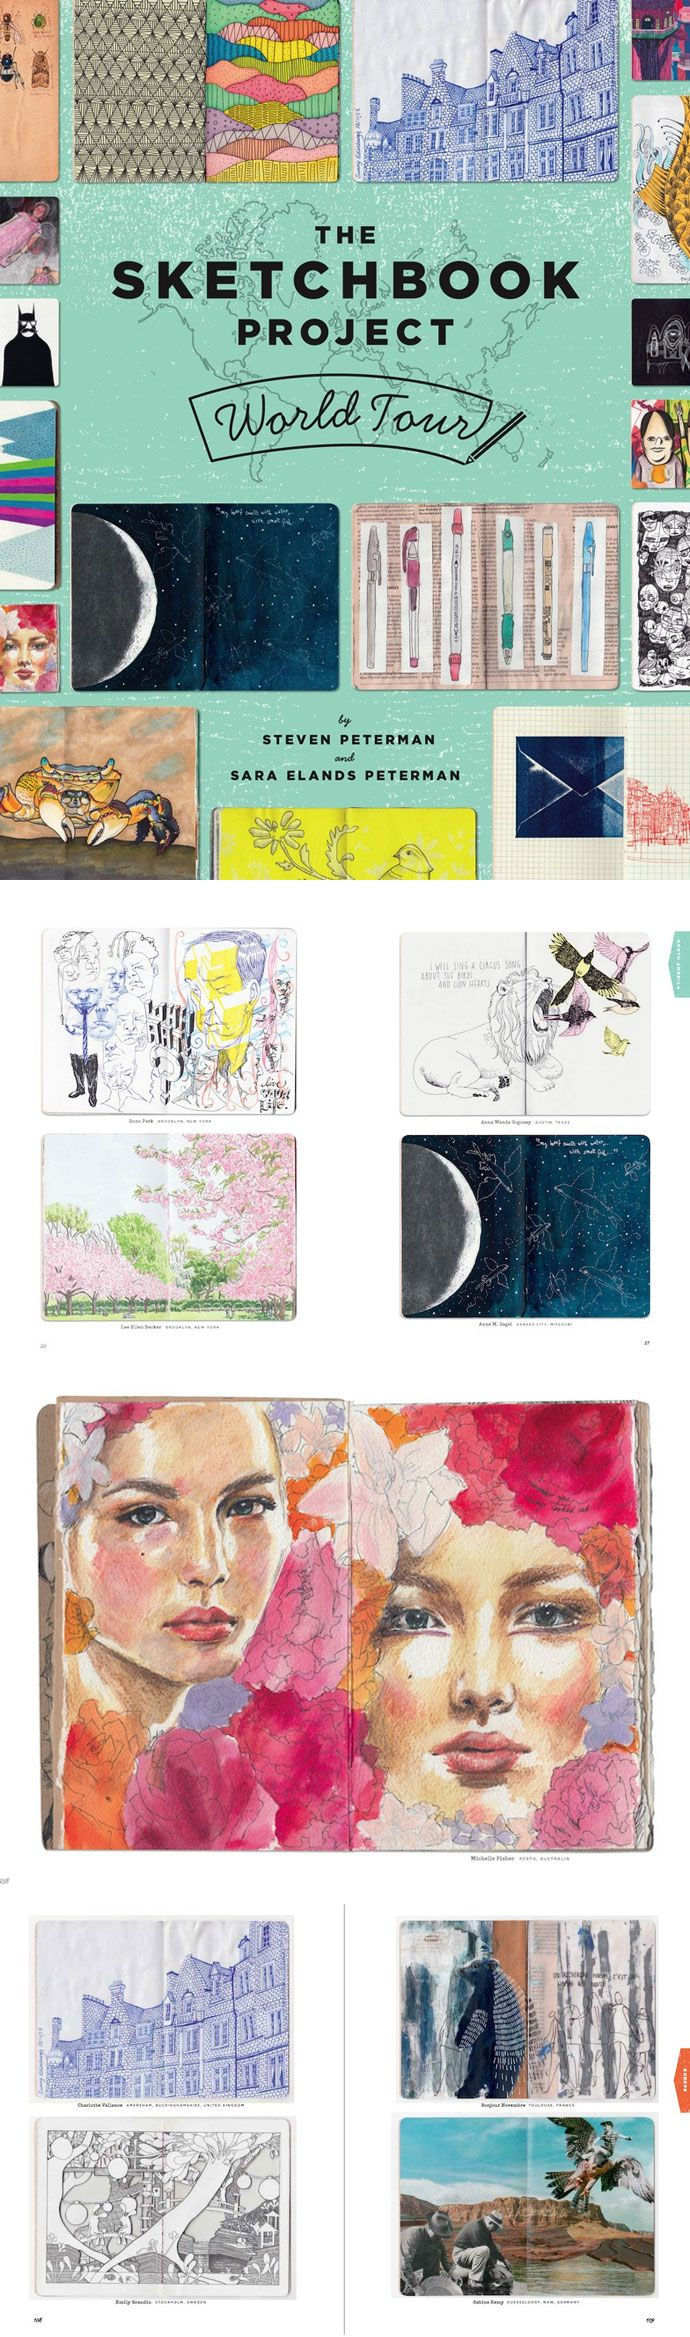 For the last eight years the Sketchbook Project has amassed an astonishing collection of more than 30-thousand crowd-sourced sketchbooks from every corner of the world. This books features some of the best and most fascinating pieces in the collection. #colossal